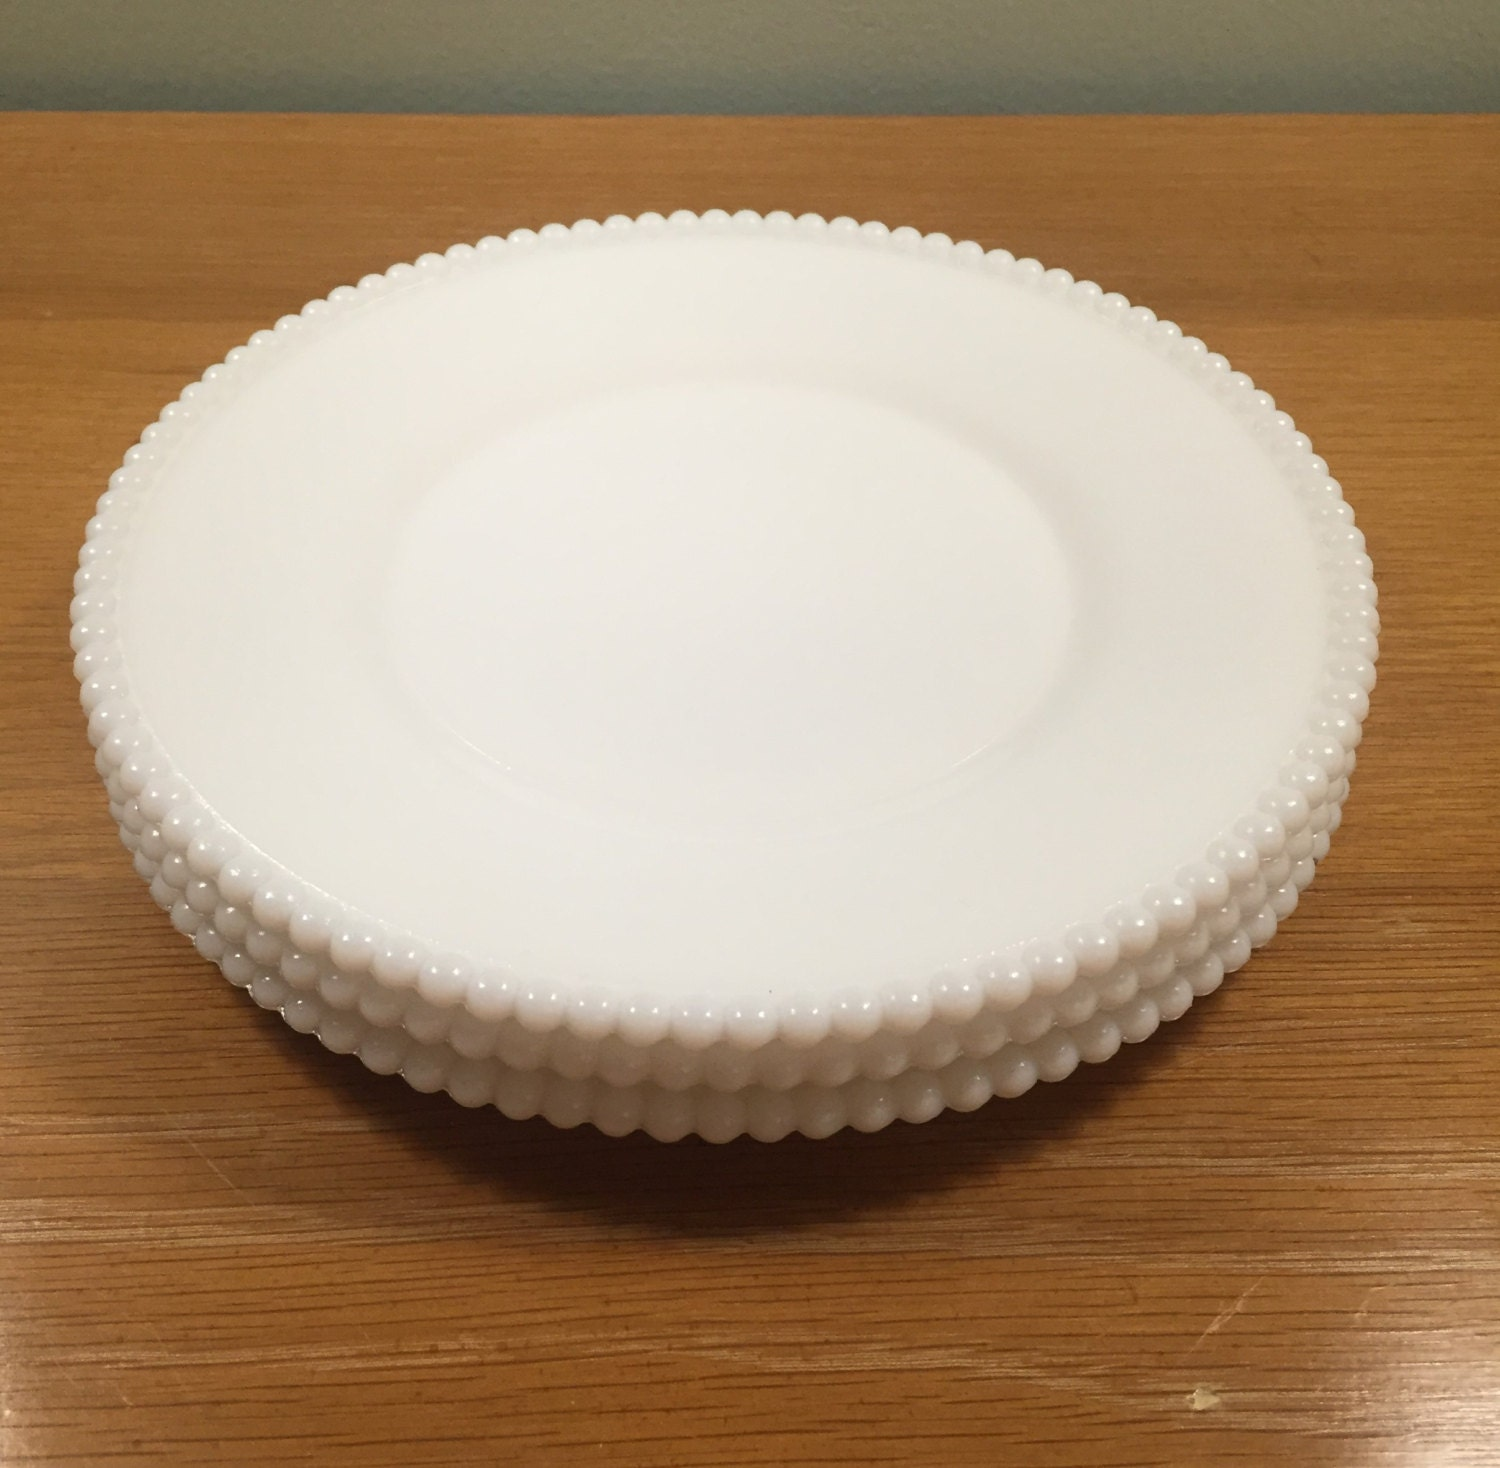 3 Westmoreland Beaded White Milk Glass Plates 8.5 Inch